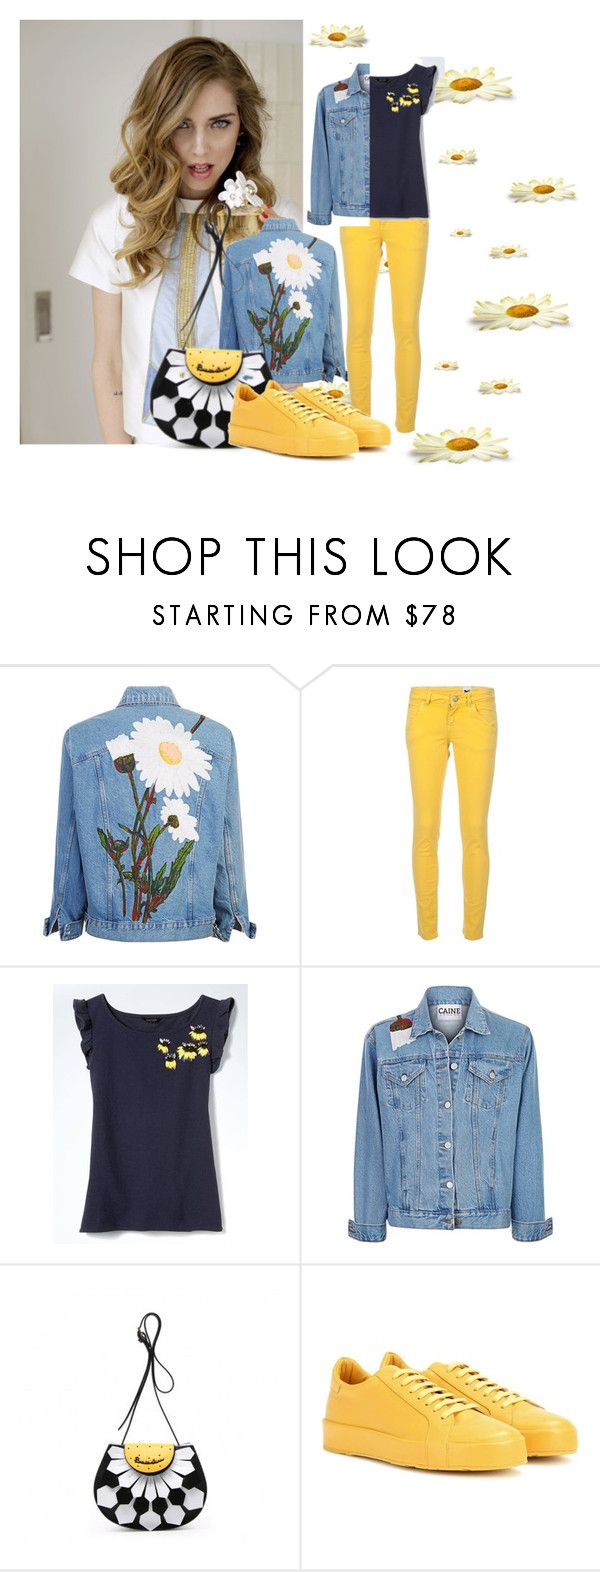 """Spring Daisy"" by m-illumino-di-glamour ❤ liked on Polyvore featuring Marc Jacobs, M Missoni, Banana Republic and Jil Sander"